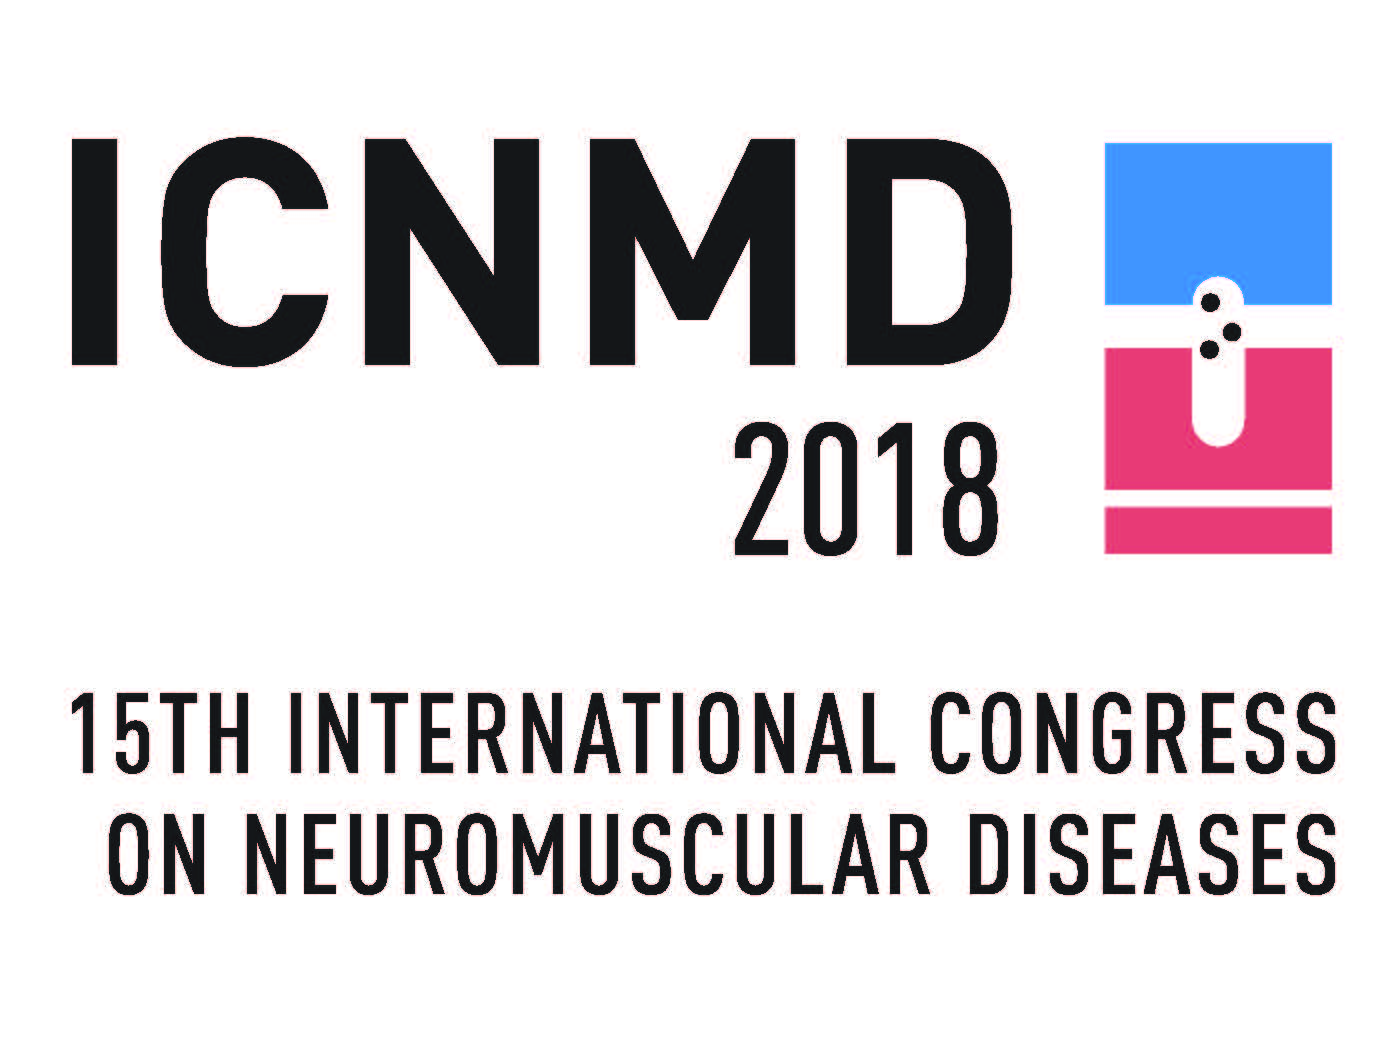 International Congress on Neuromuscular Diseases